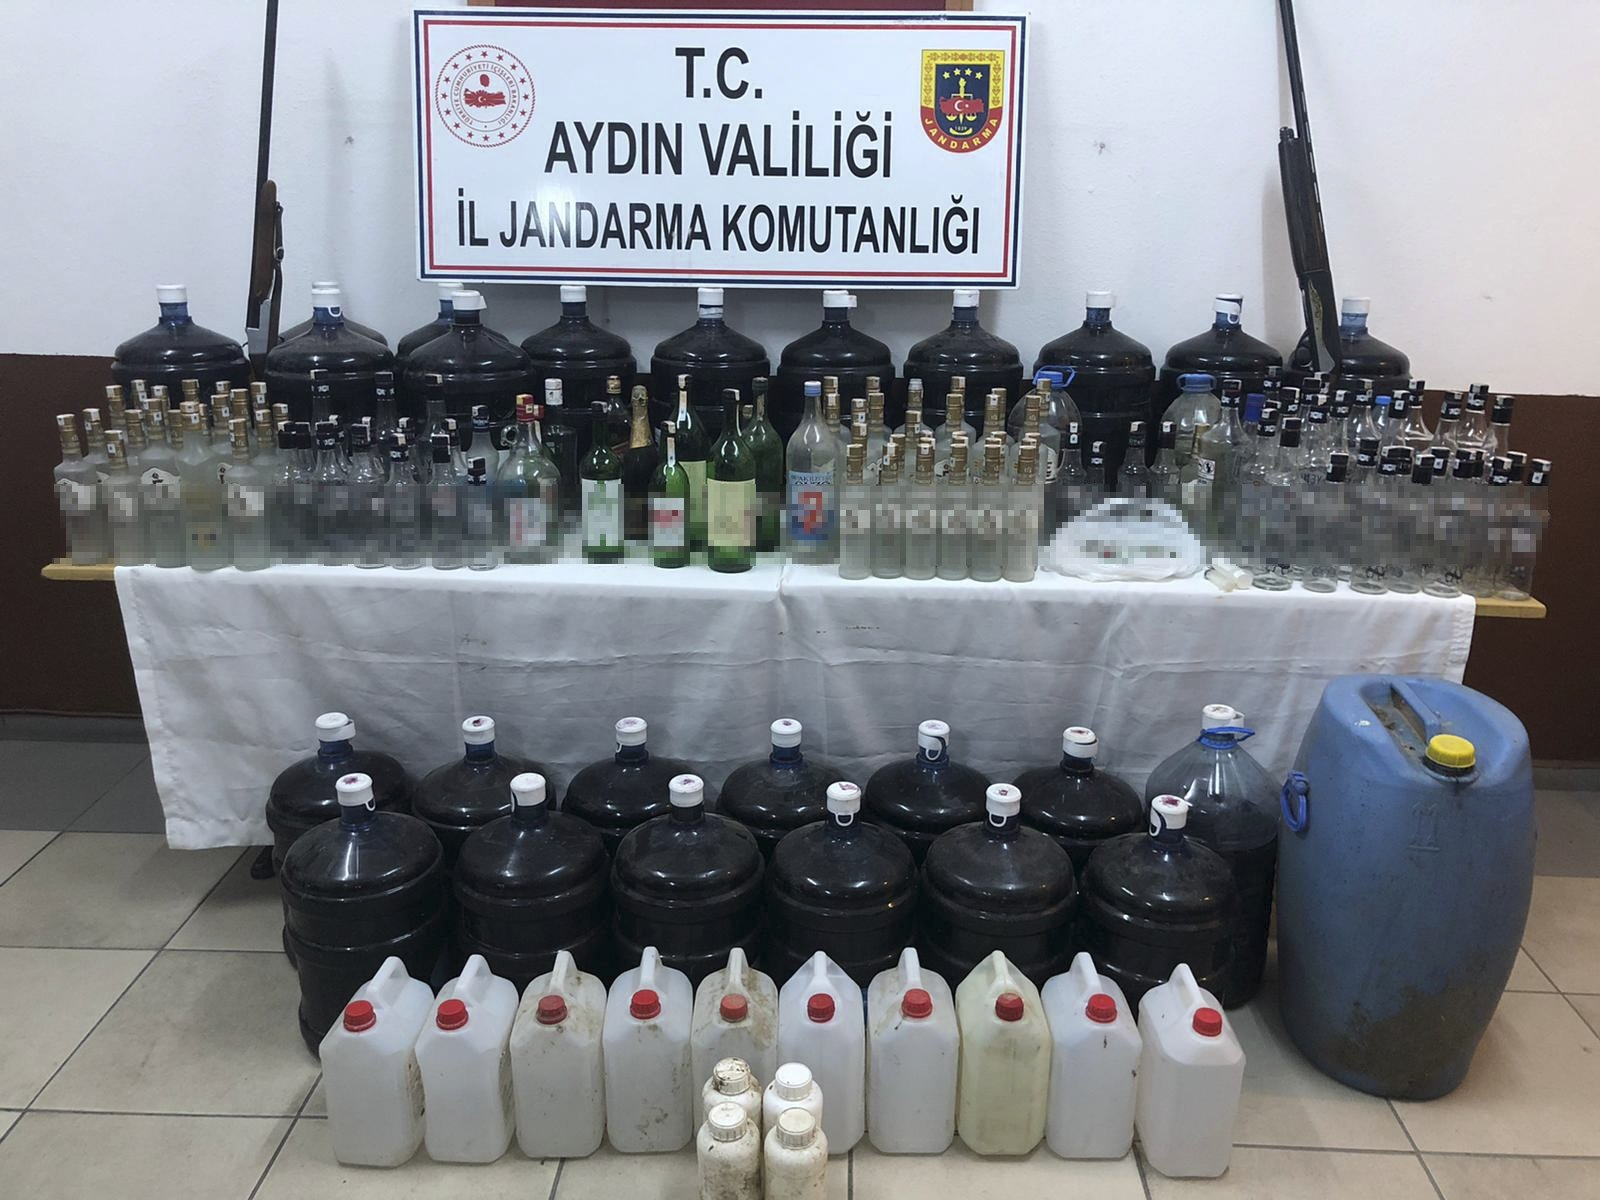 67 found dead from alcohol poisoning in Turkey in last 13 days